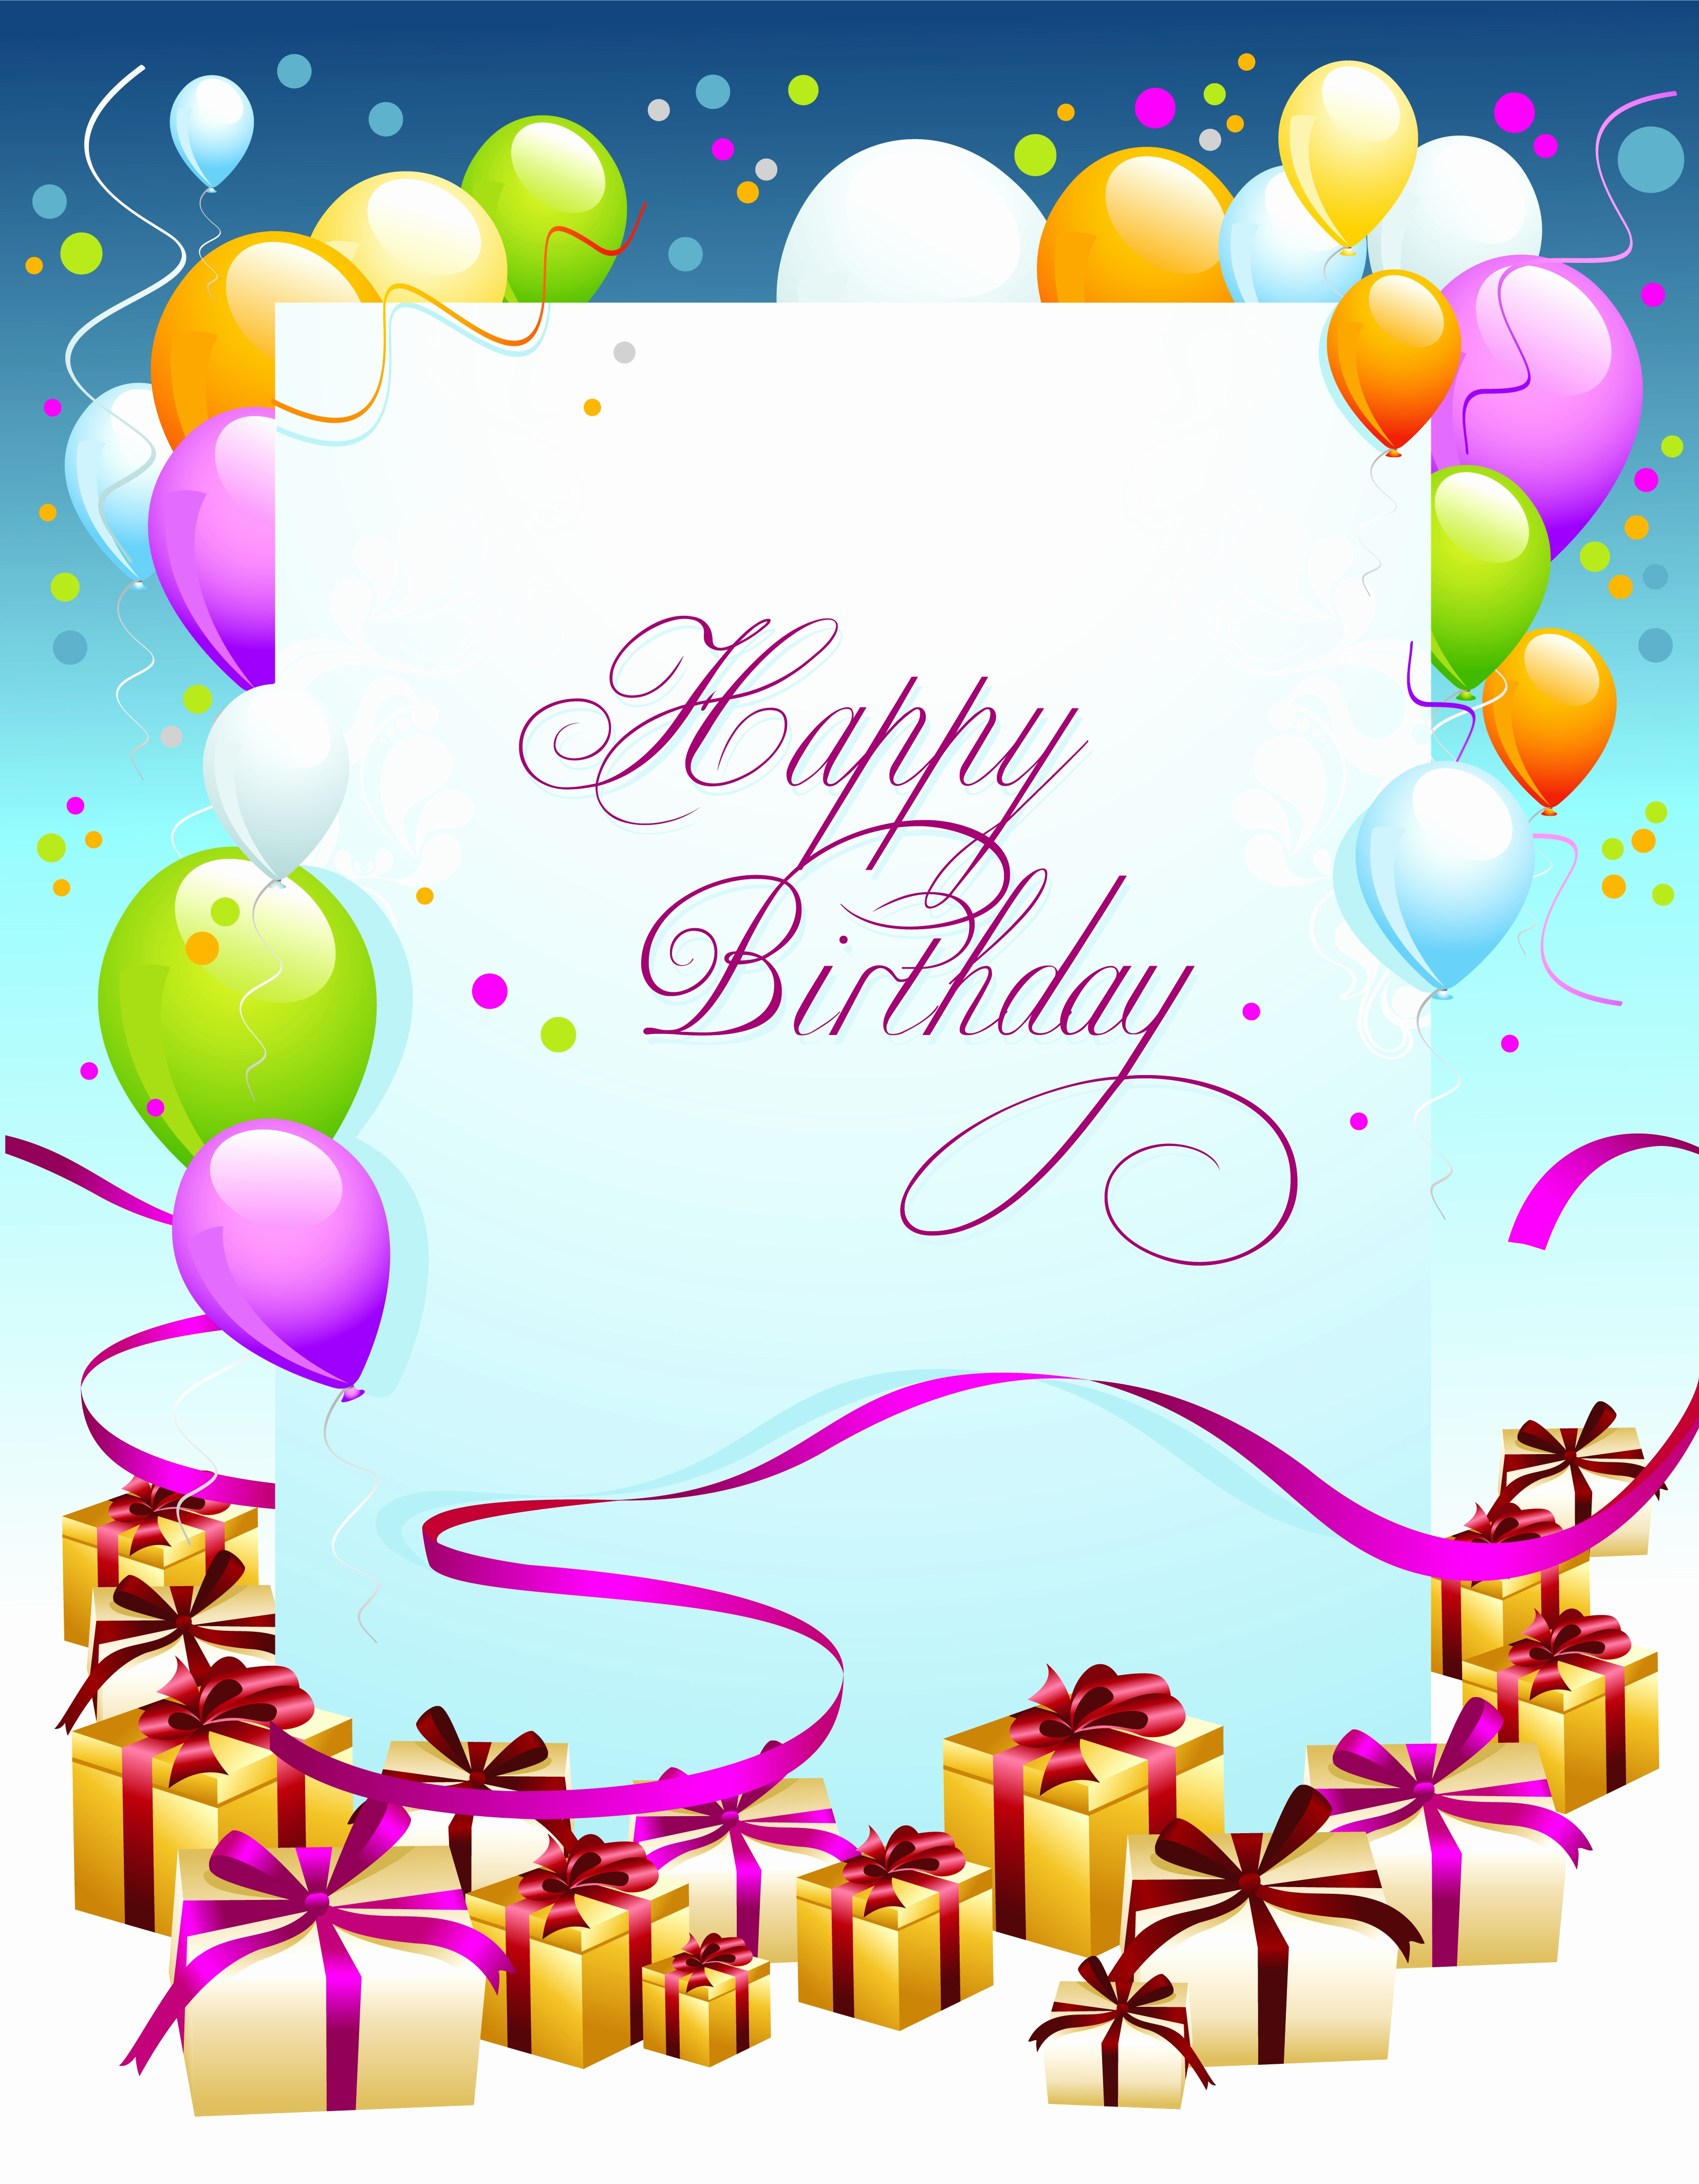 send birthday card by text message ; free-birthday-cards-to-send-by-text-message-elegant-birthday-card-cliparts-free-download-clip-art-of-free-birthday-cards-to-send-by-text-message